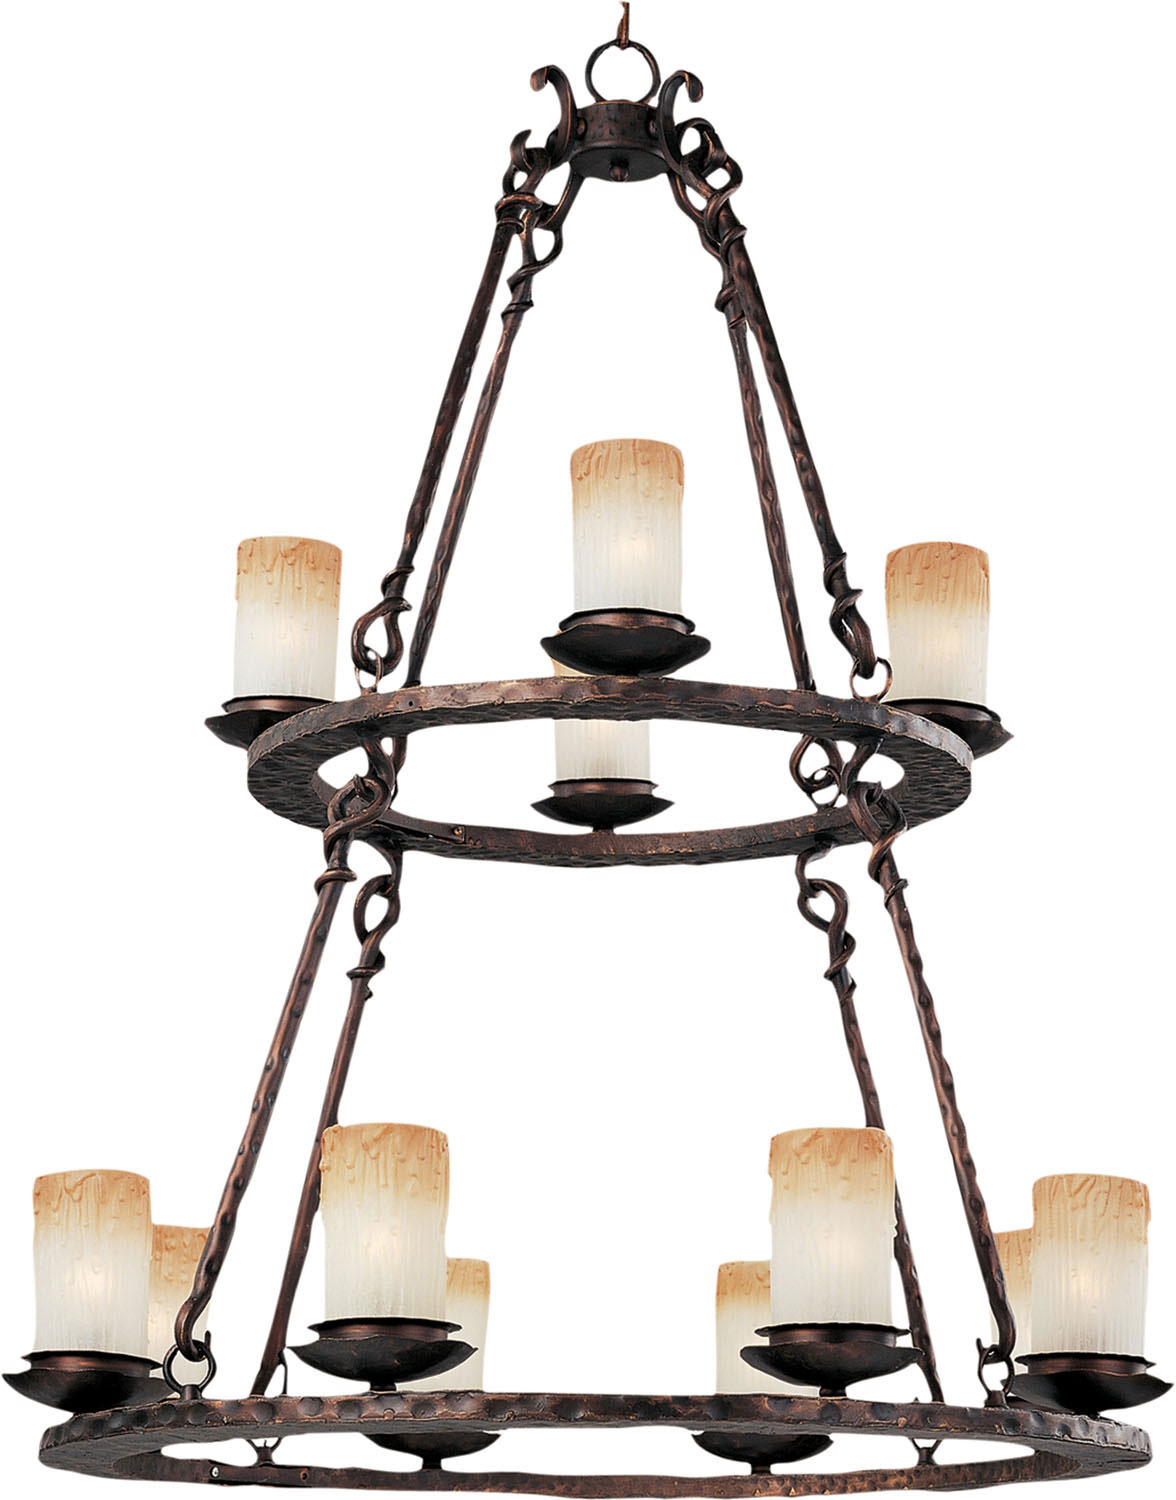 12 Light Chandelier from the Notre Dame collection by Maxim 10977WSOI